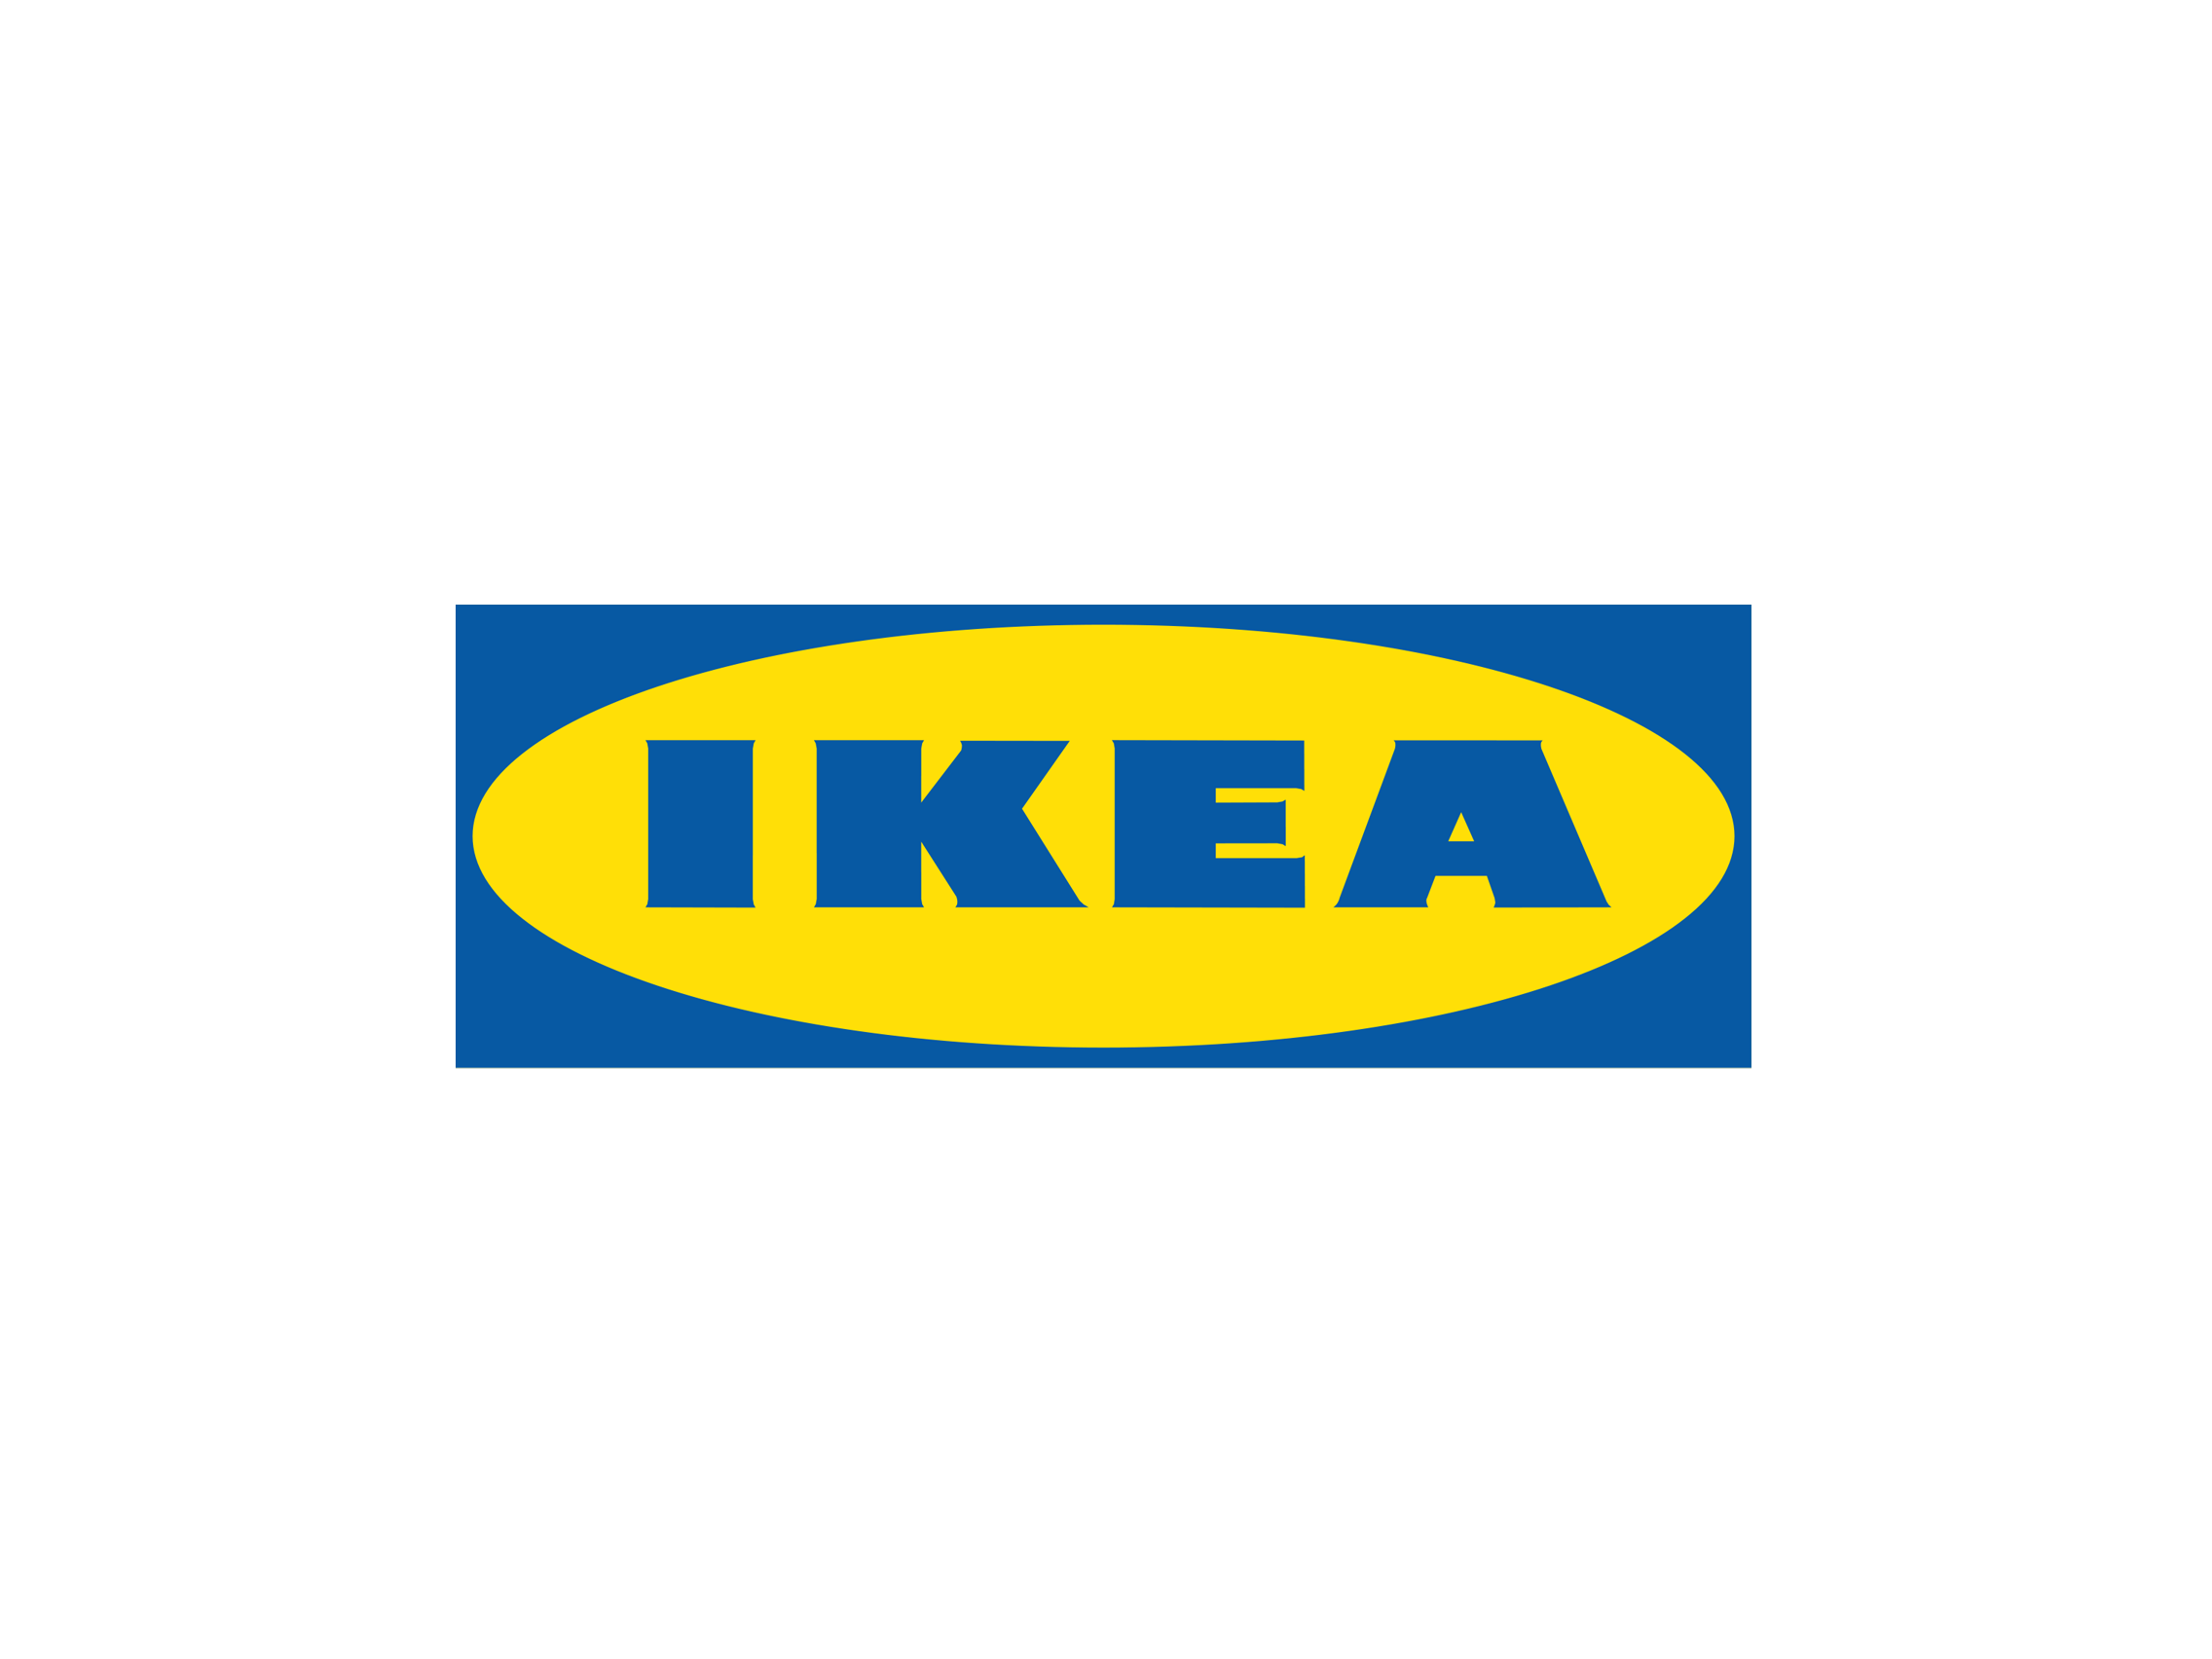 Logo Ikea Food : Ikealogo from culturevie.info size 2272 x 1704 png 68kB